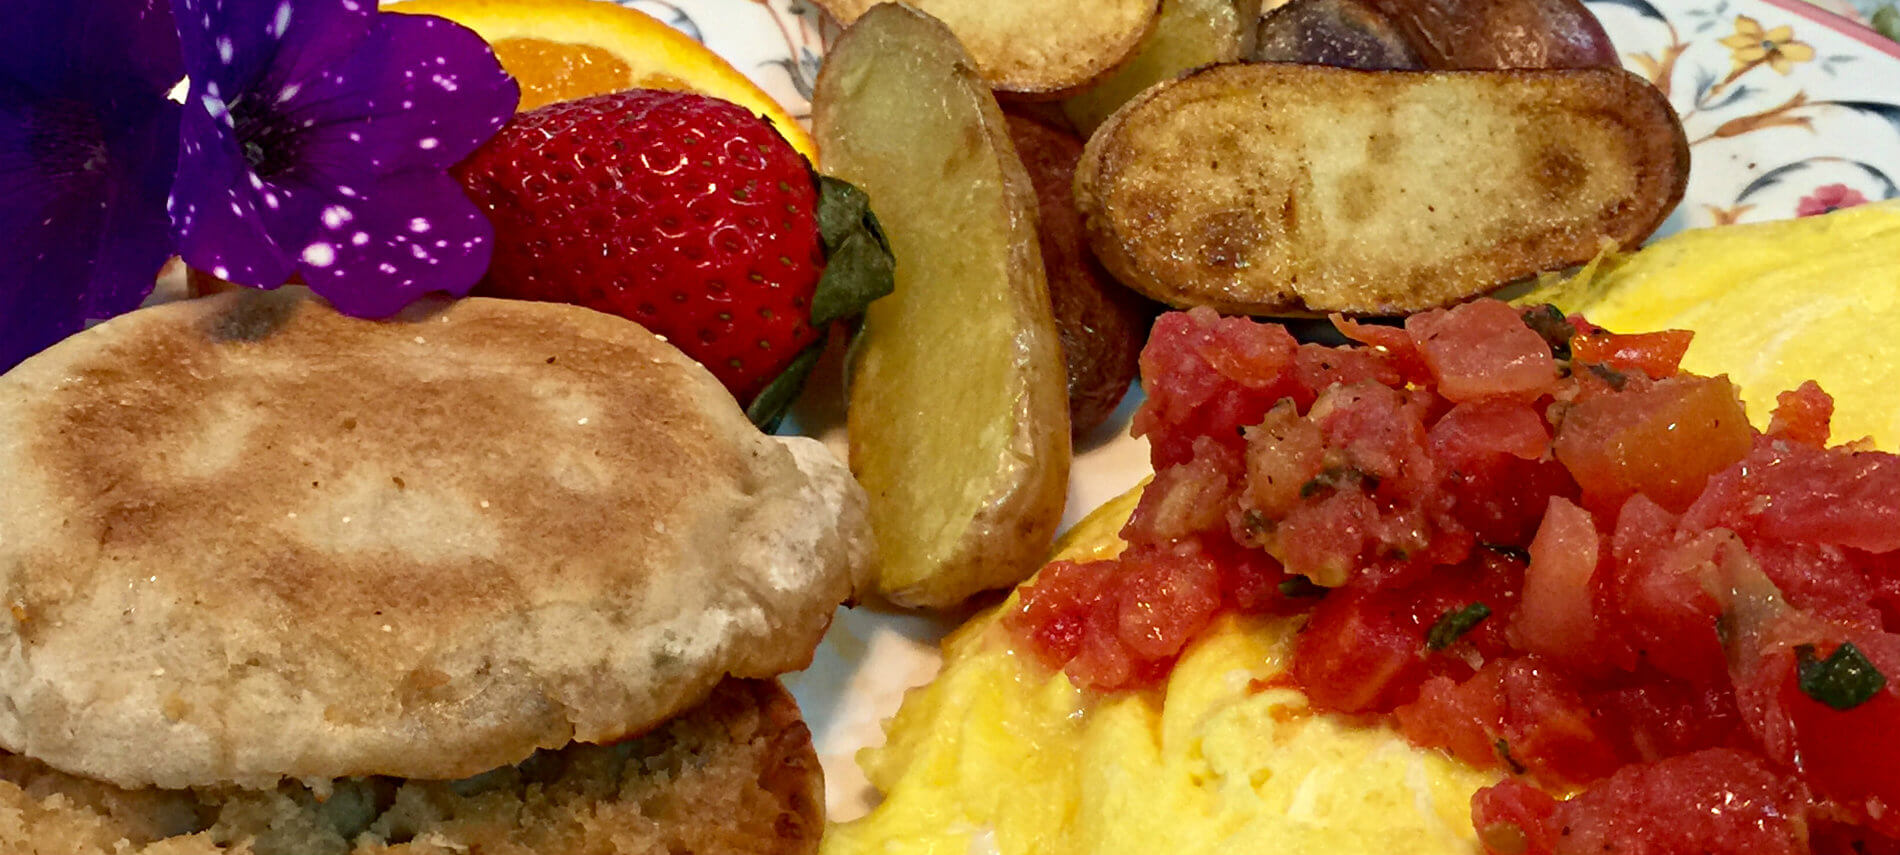 Omelette topped with tomatoes, golden potatoes, fresh fruit and toasted English muffin